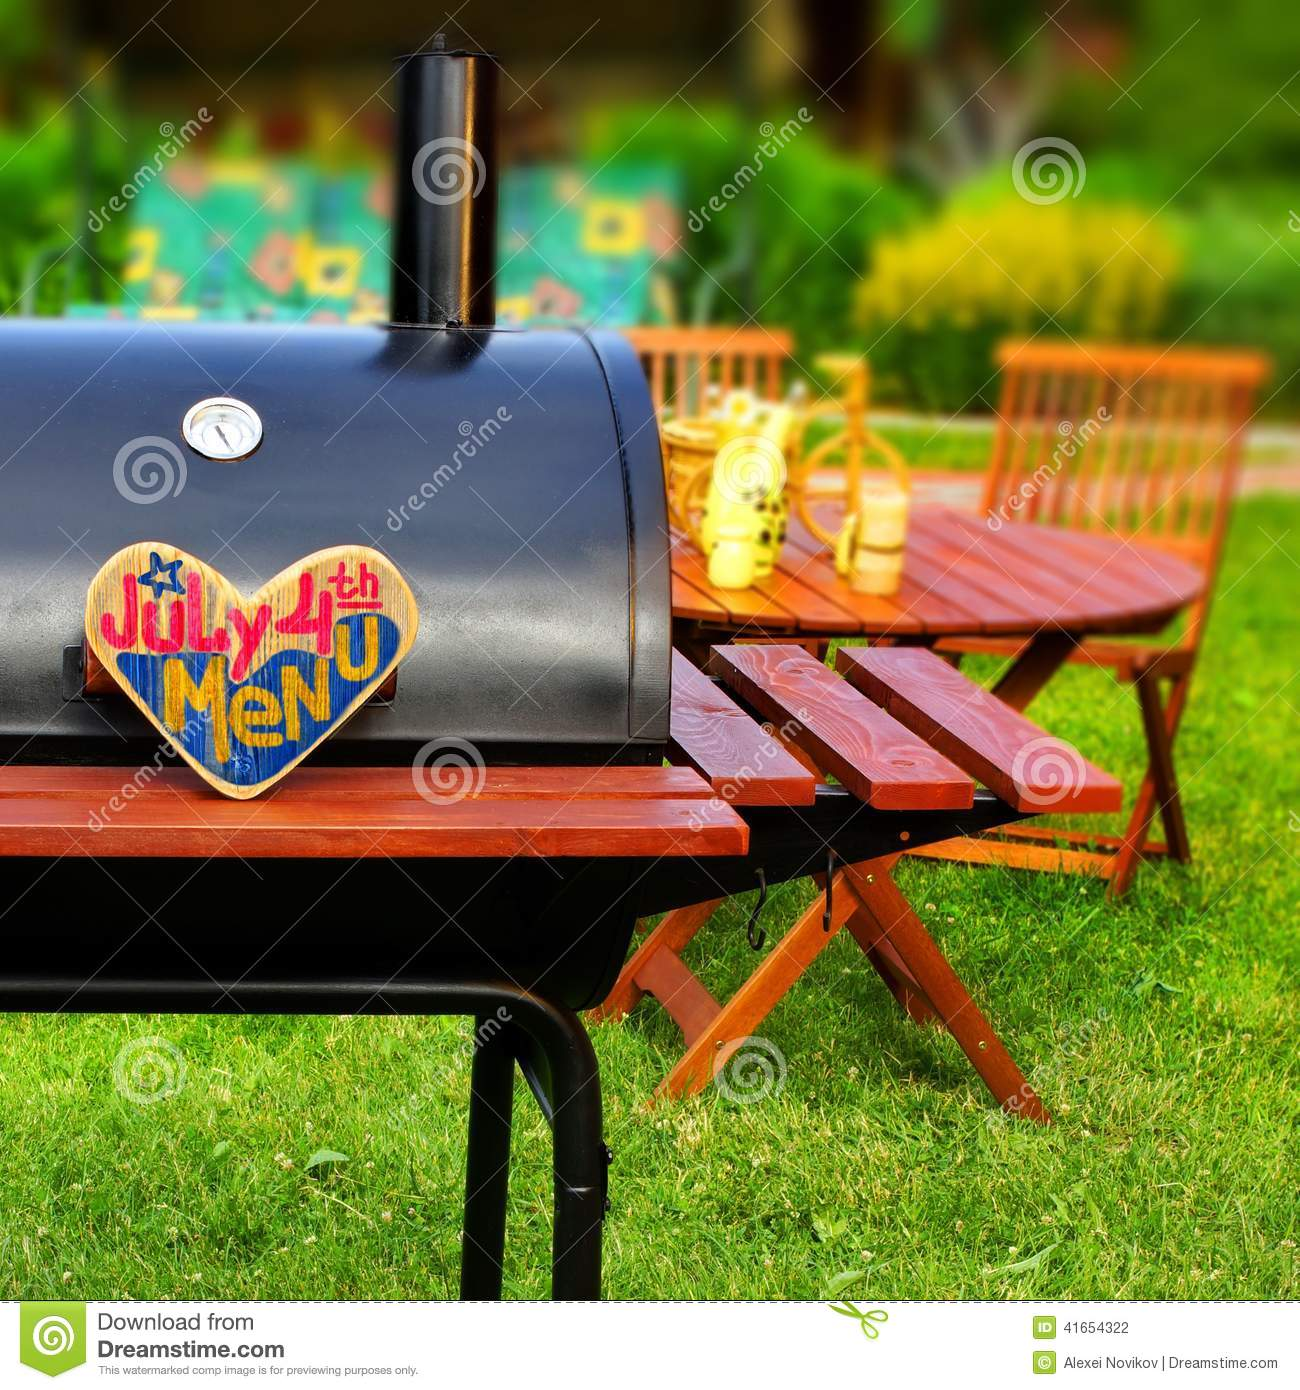 Backyard Summer Background : BBQ Summer Backyard Party Scene with sign JULY 4 th MENU on wooden